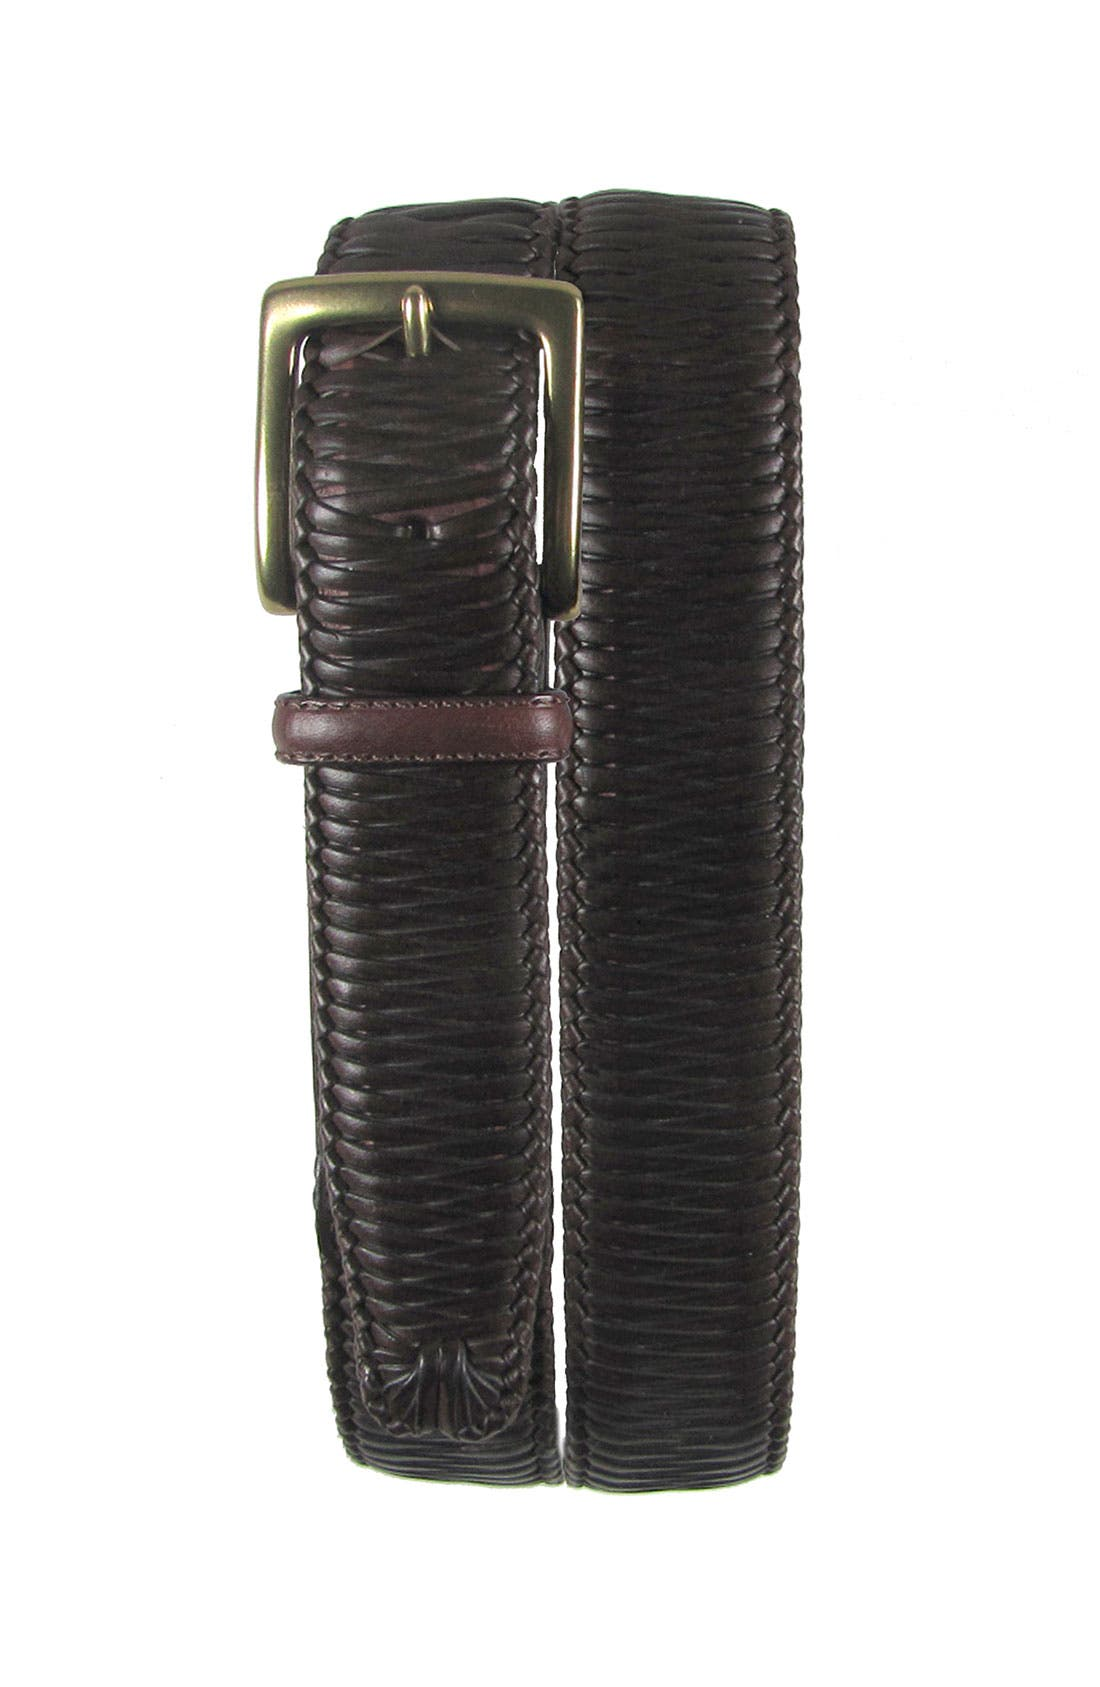 Main Image - Tommy Bahama 'Largo' Woven Leather Belt